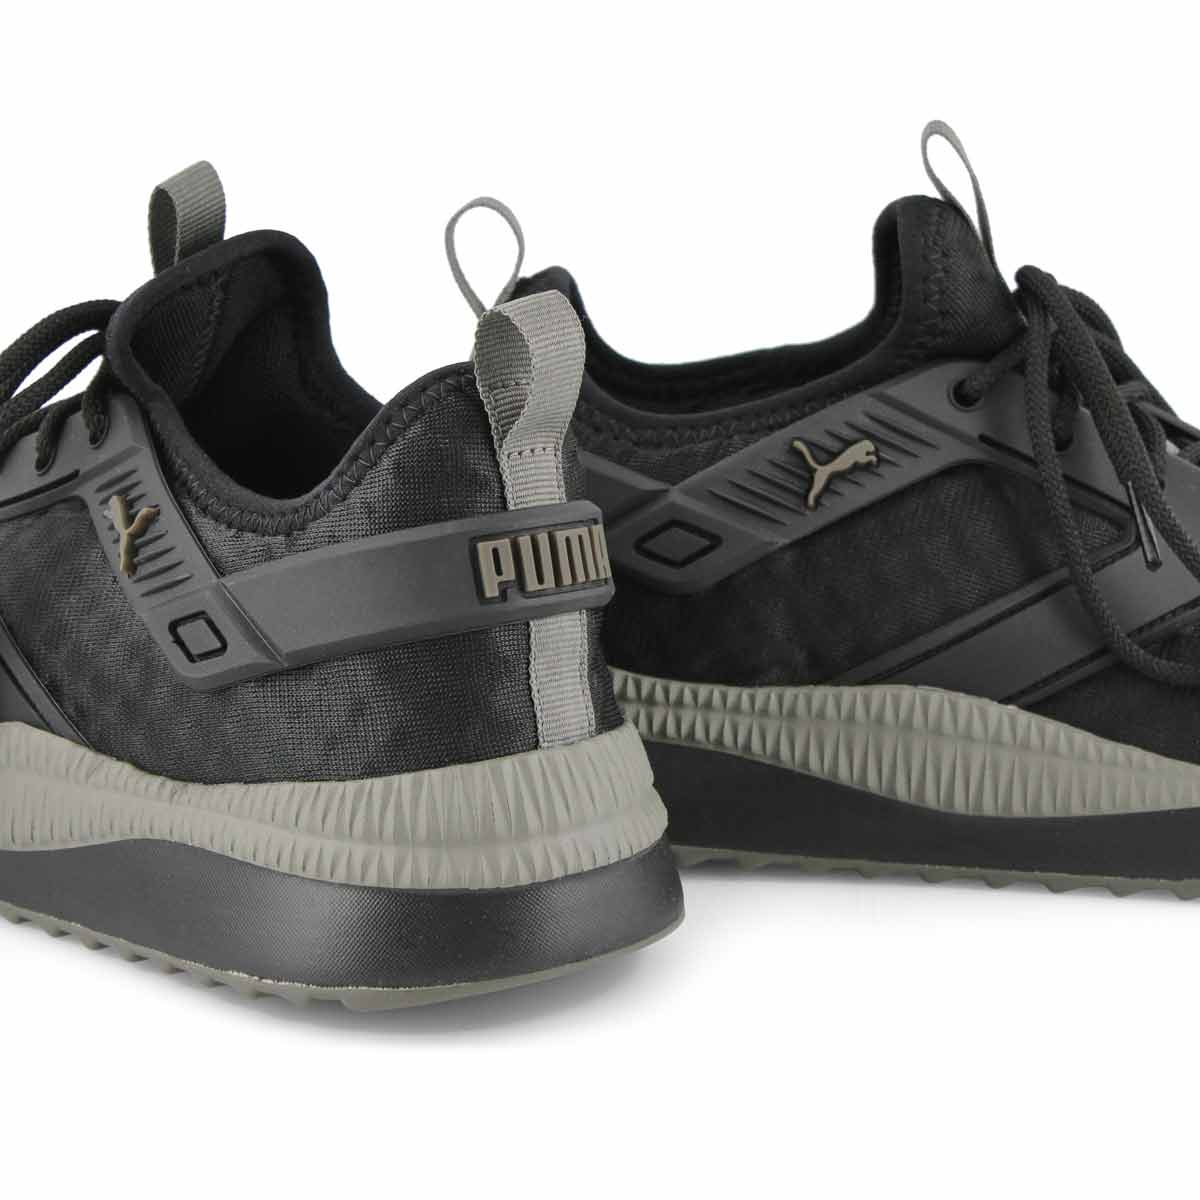 Mns Pacer Next Excel black sneakers